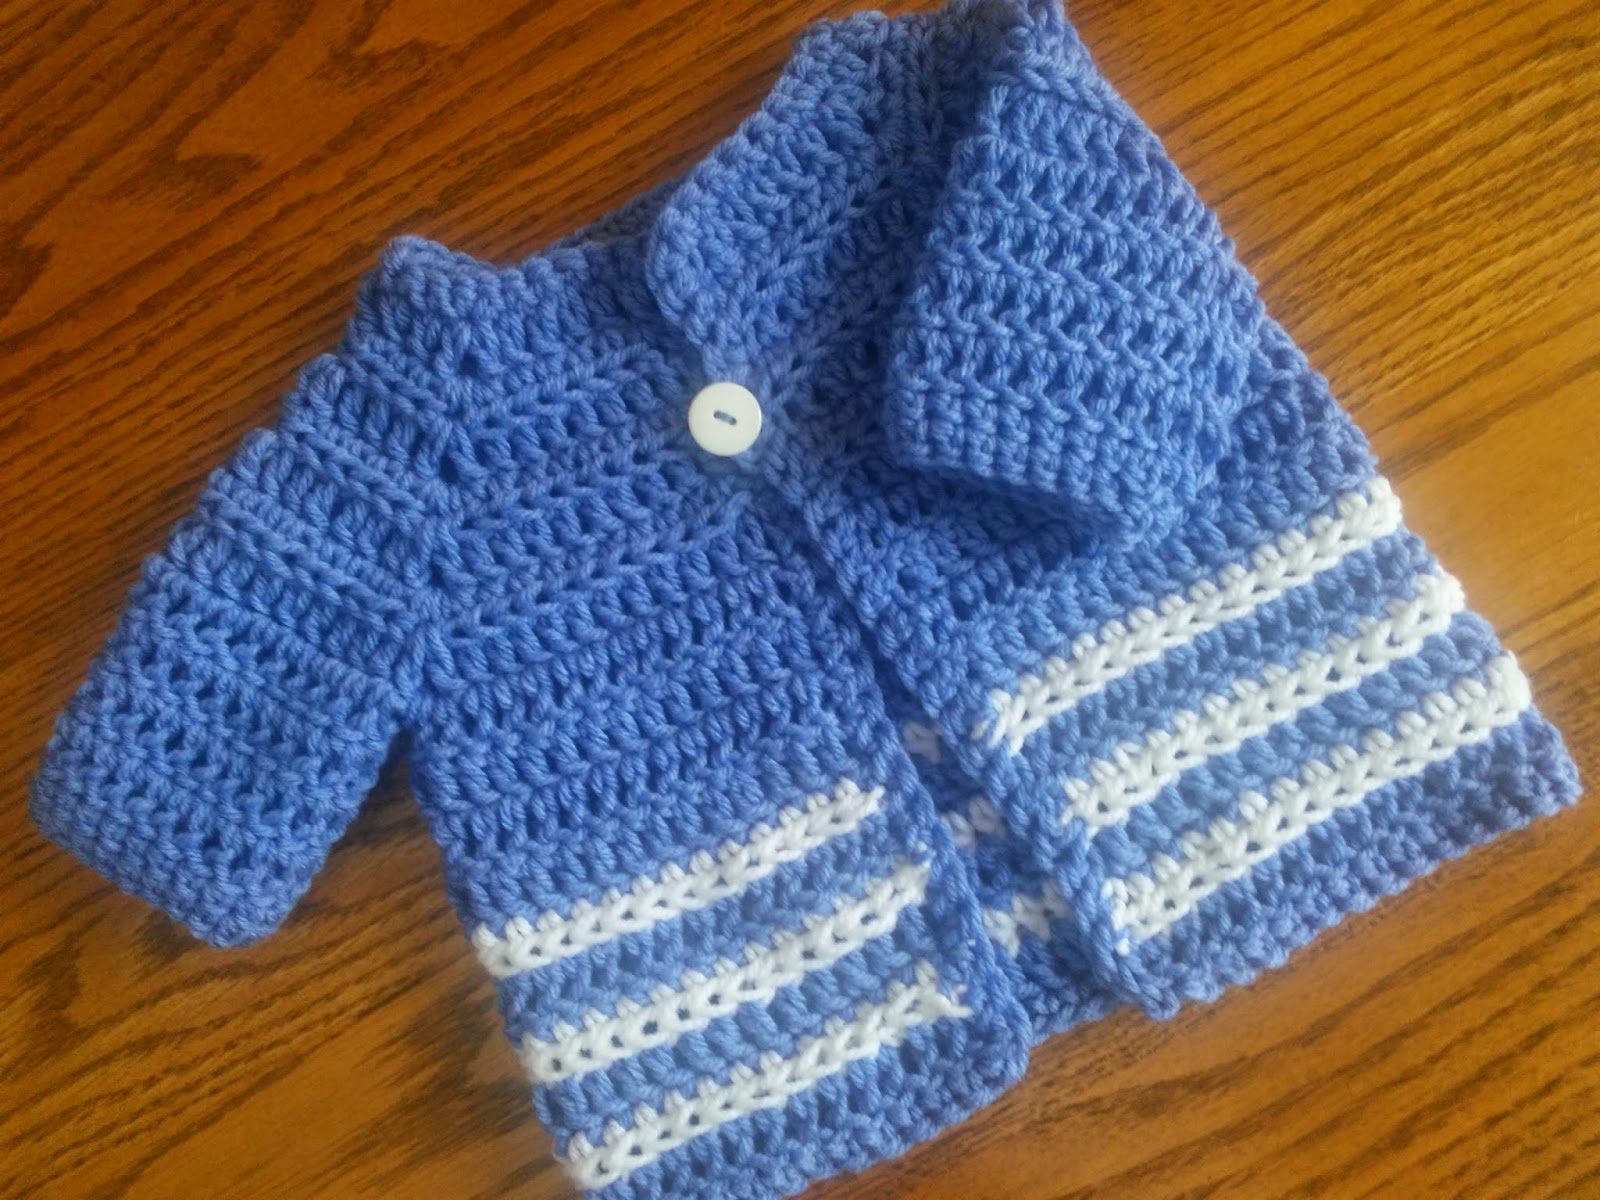 Free Crochet Patterns For Sweaters For Toddlers : Craft Brag: Baby Boy Crochet Sweater - Pattern